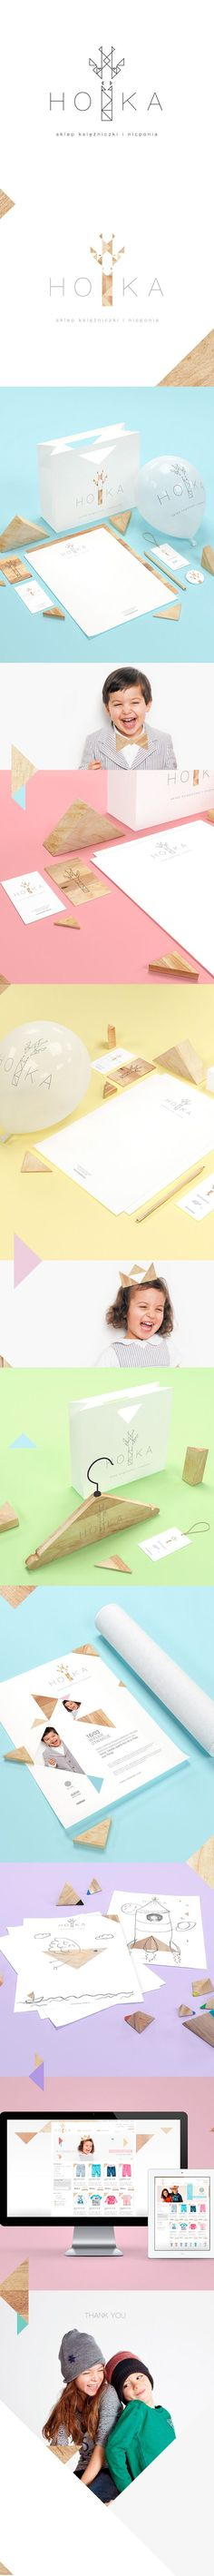 HOKA clothes for children by Joanna Namyślak, via Behance identity, packaging, branding PD Logo Design, Web Design, Brand Identity Design, Graphic Design Branding, Logo Branding, Creative Design, Packaging Design, Branding Agency, Kids Packaging